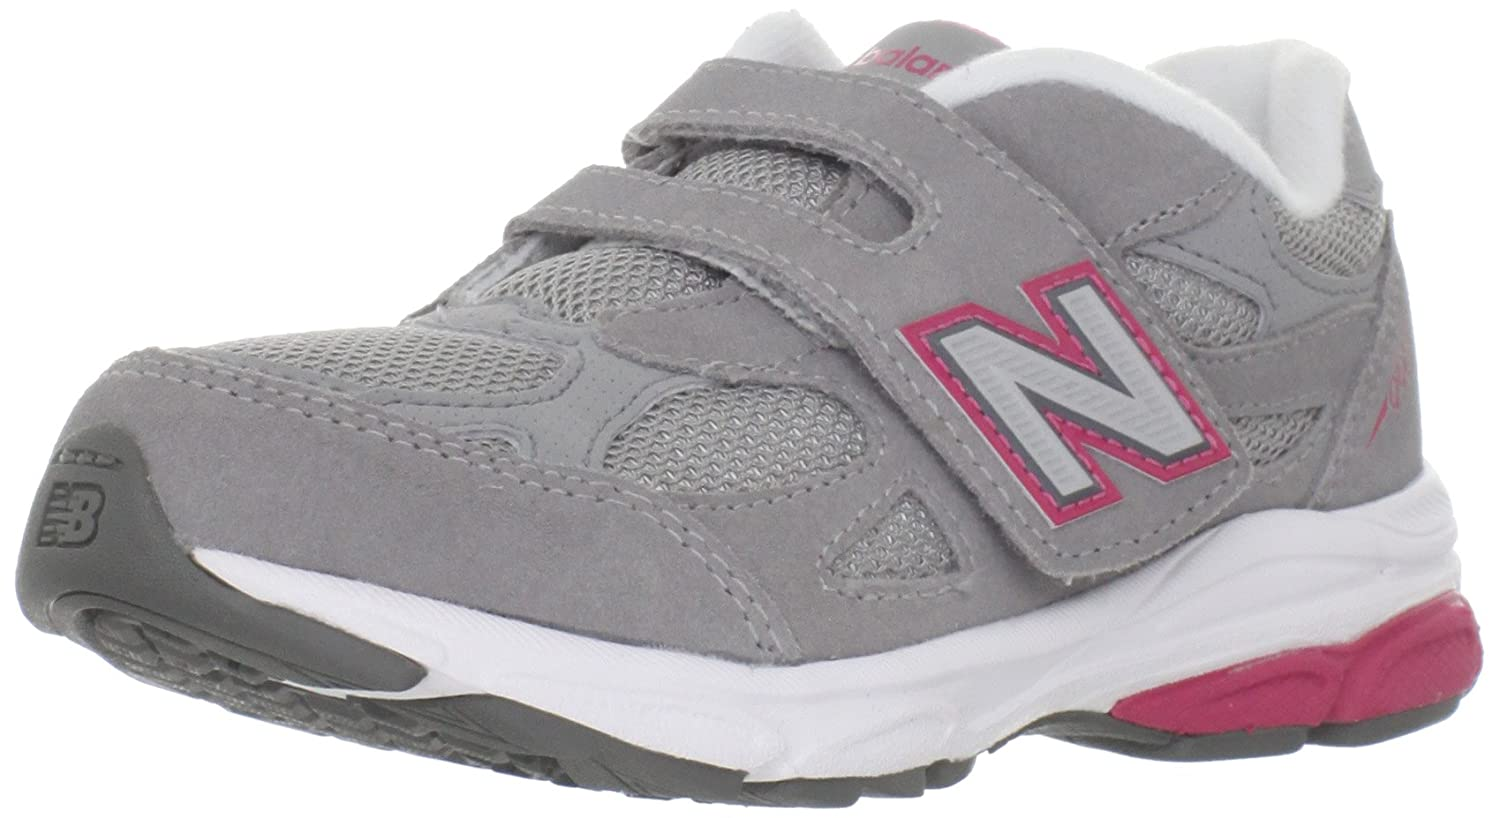 New Balance KV990 Hook-and-Loop Running Shoe (Toddler/Little Kid) KV990 Pre Hook and Loop - K